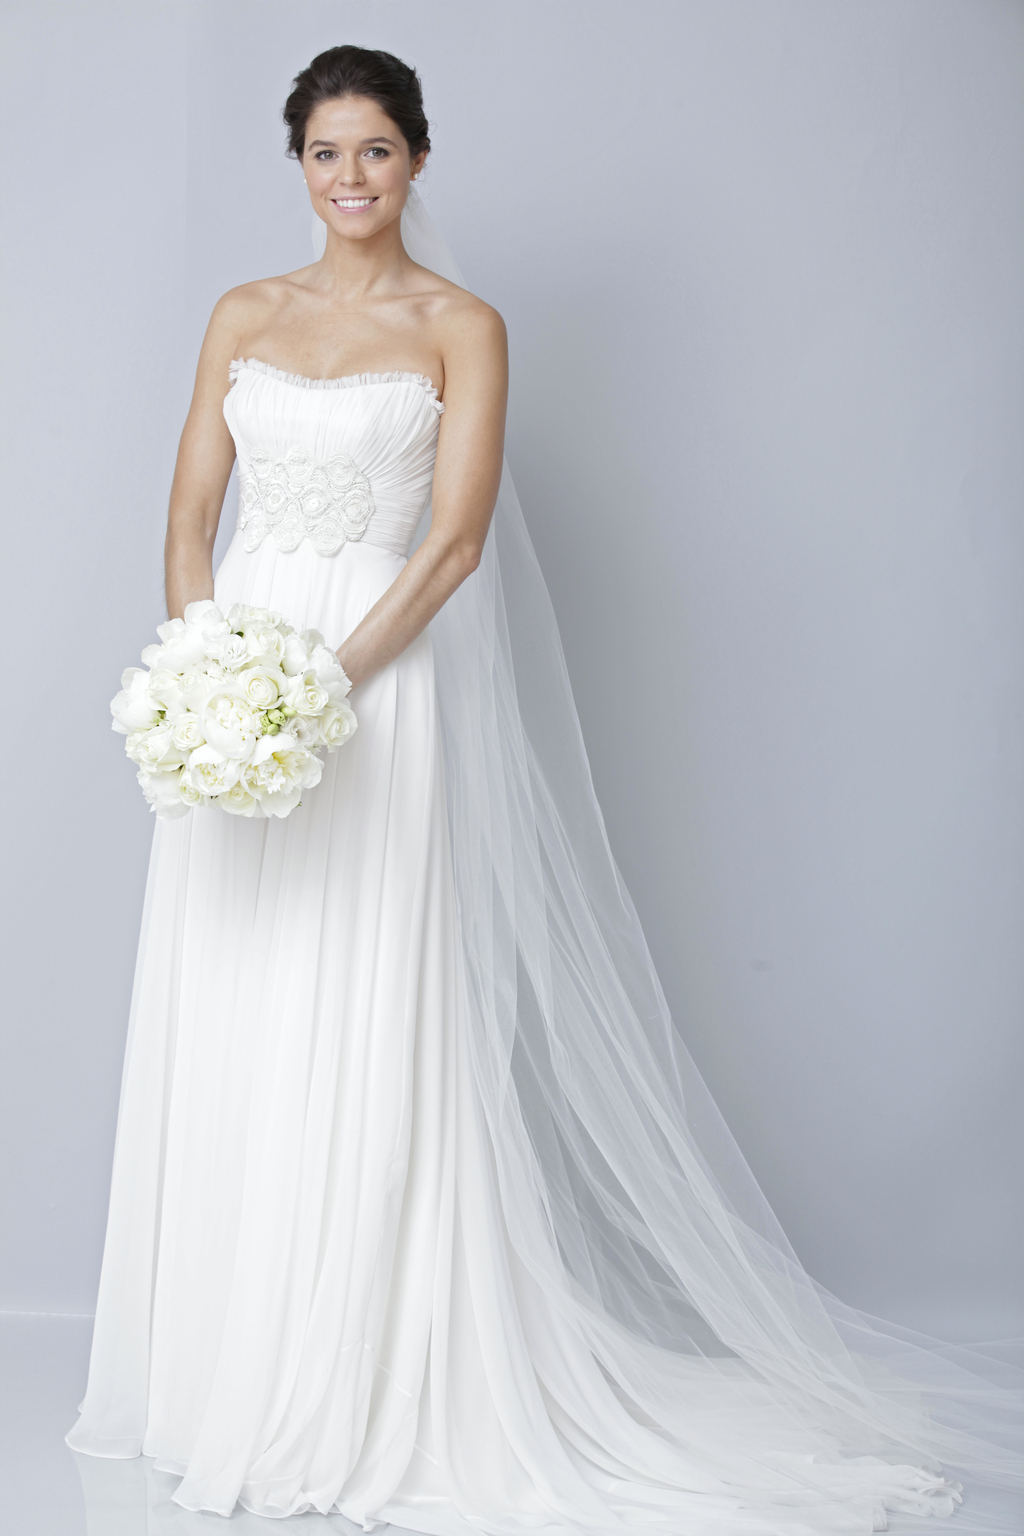 Theia-white-collection-wedding-dress-spring-2013-bridal-gown-890007.full